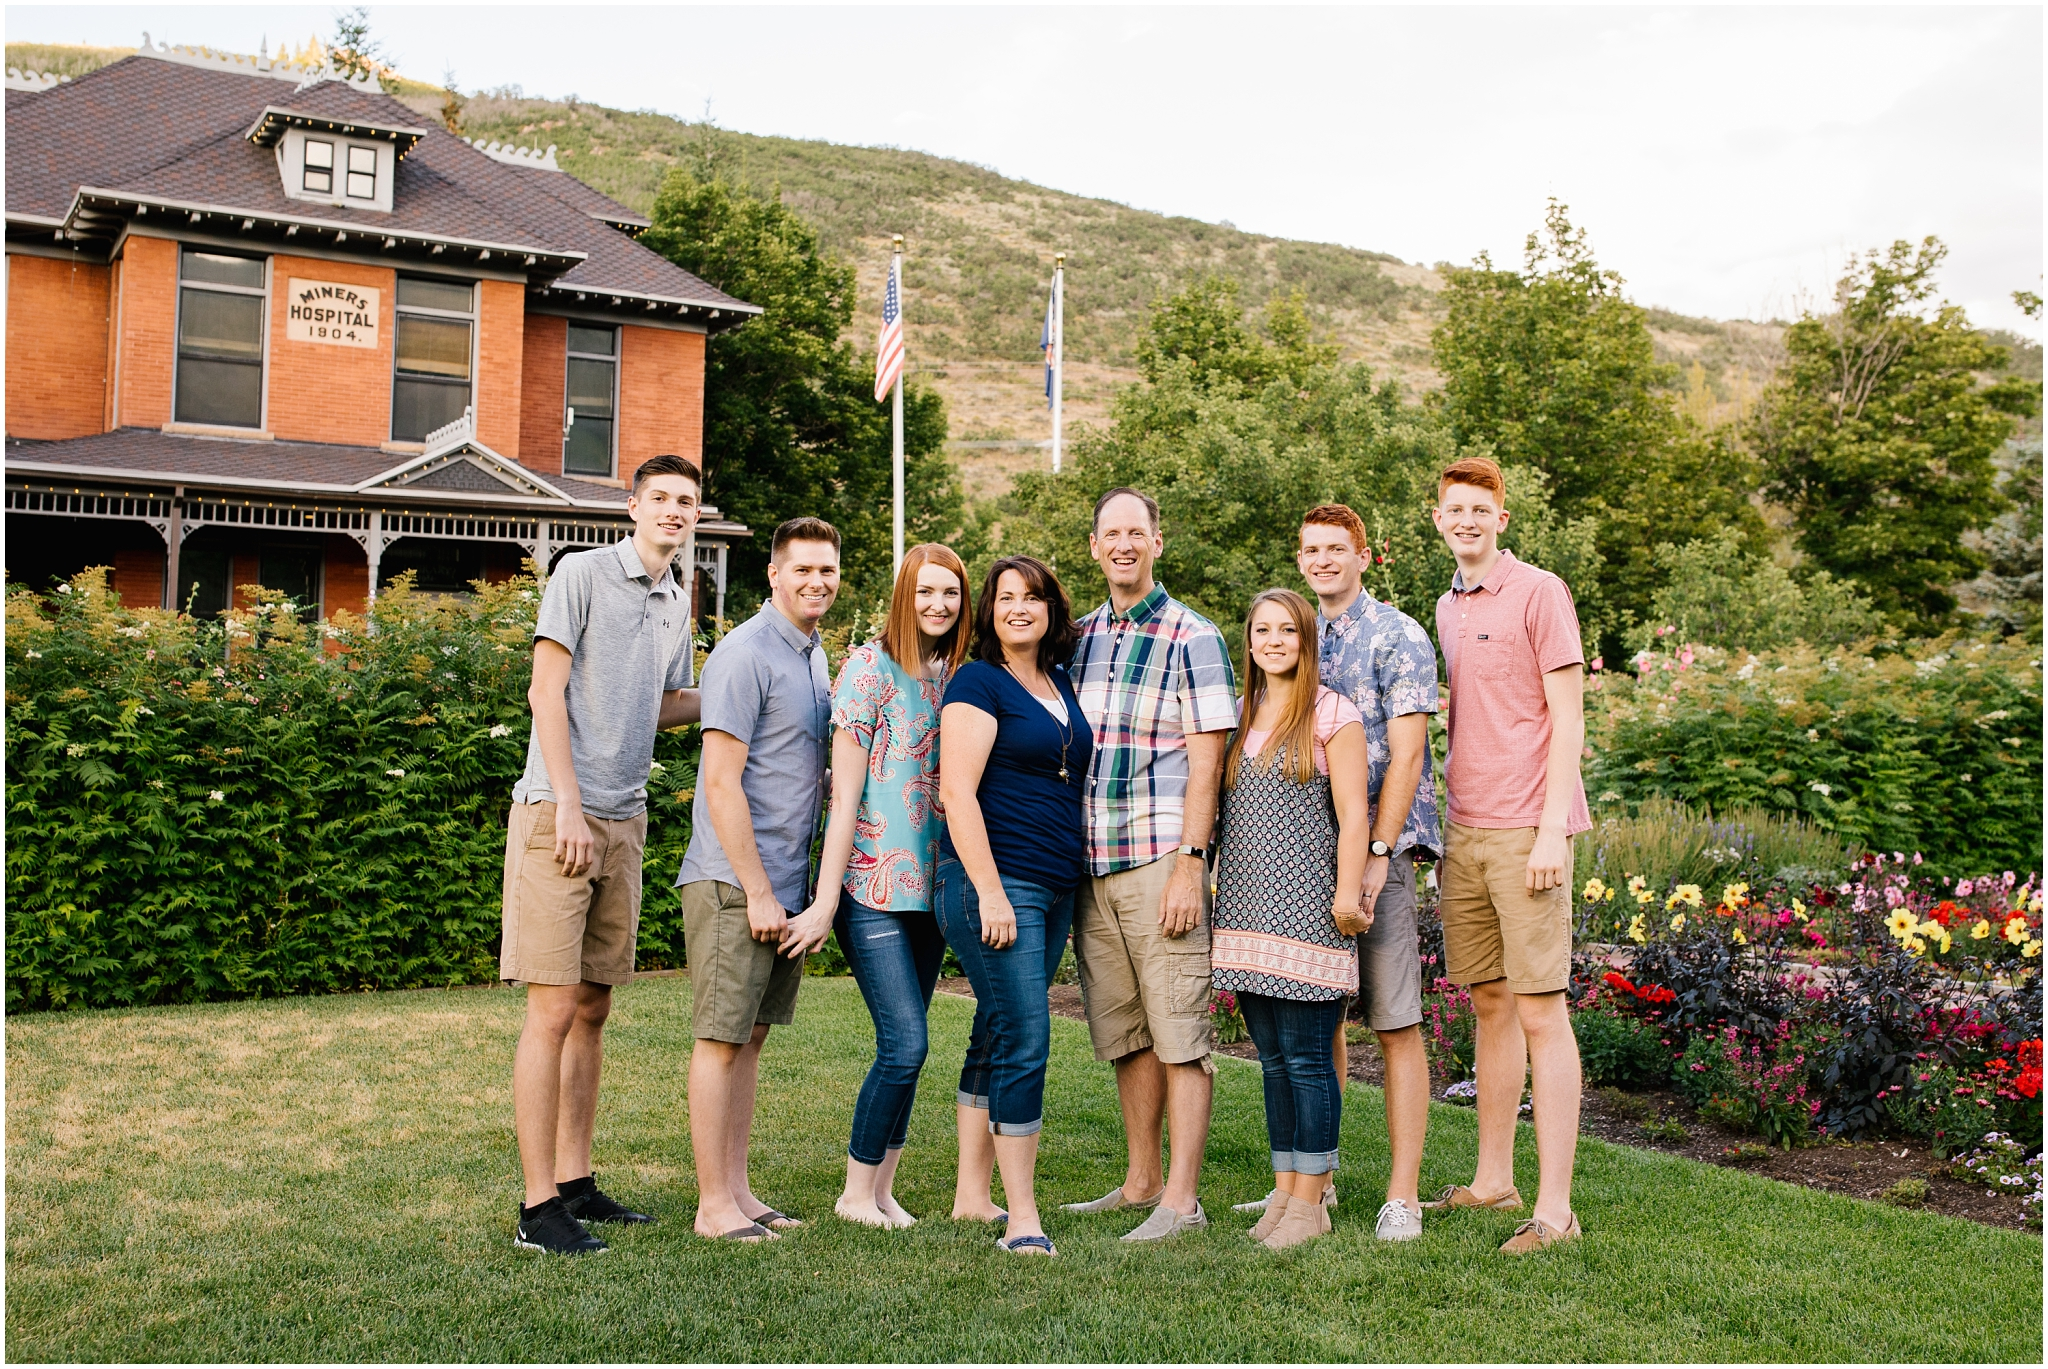 Kimball-24_Lizzie-B-Imagery-Utah-Family-Photographer-Salt-Lake-City-Park-City-Miners-Hospital-Community-Center.jpg